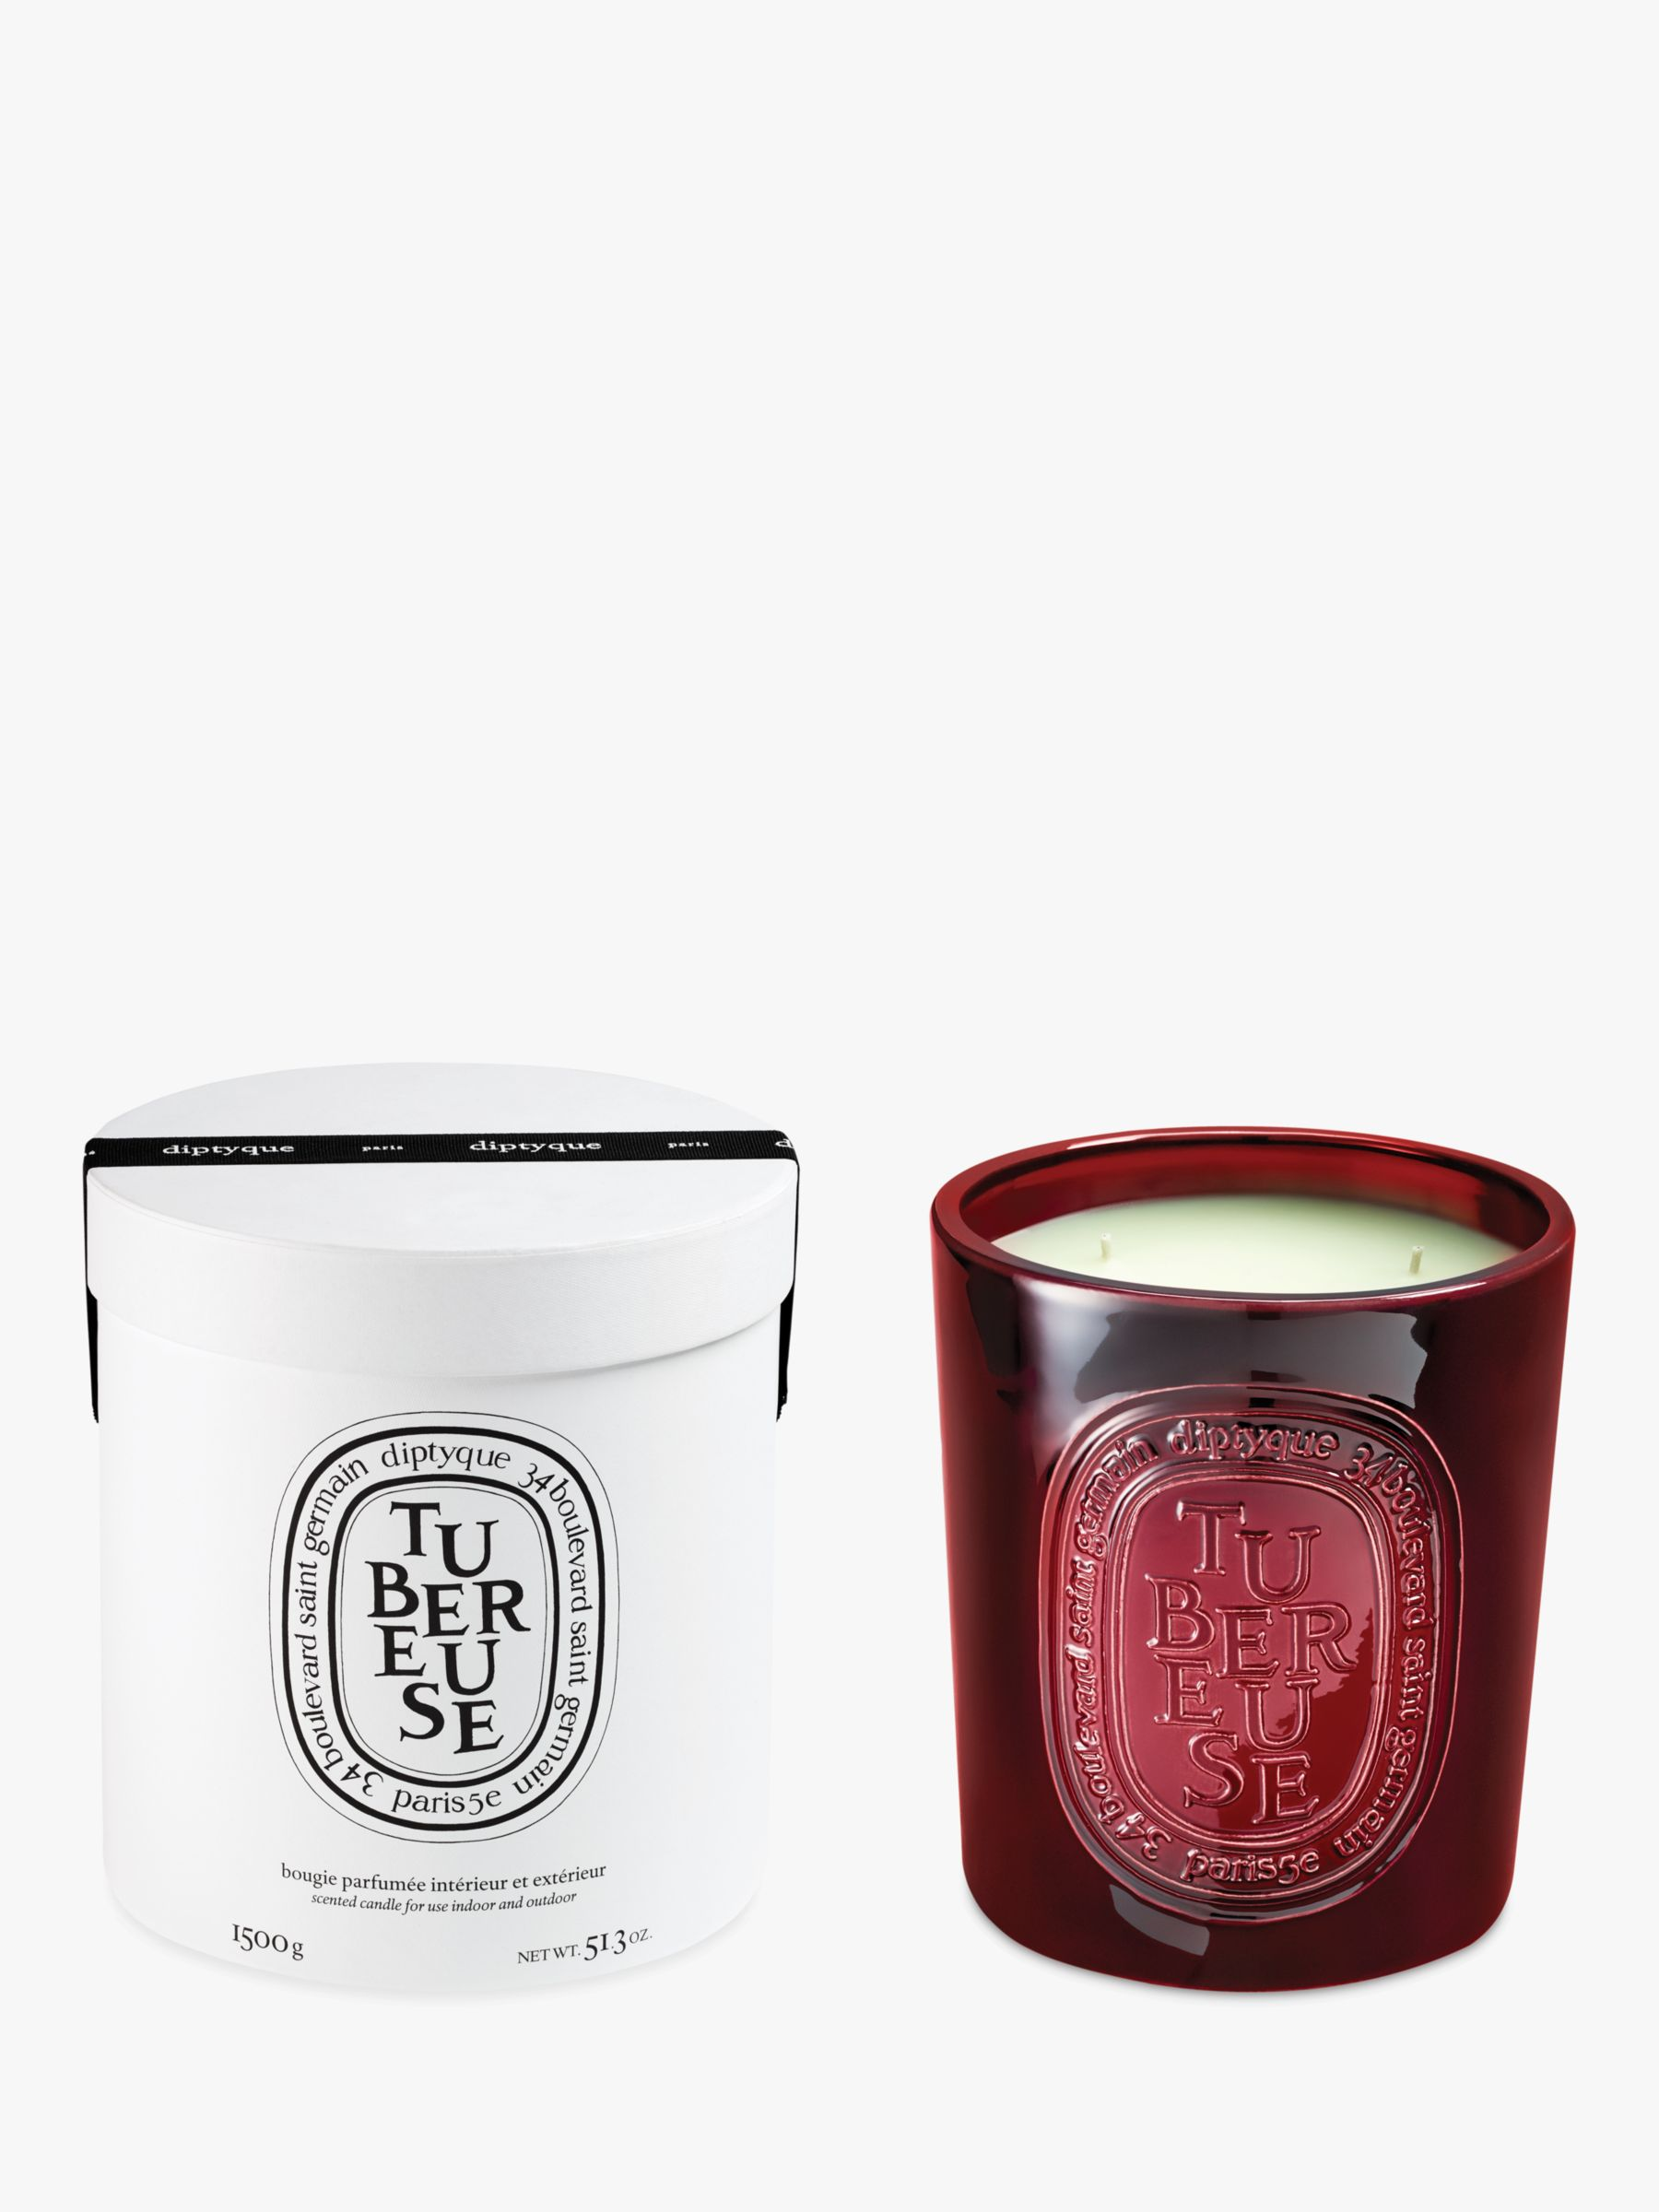 Diptyque Diptyque Large Indoor & Outdoor Tubéreuse Scented Candle, 1500g